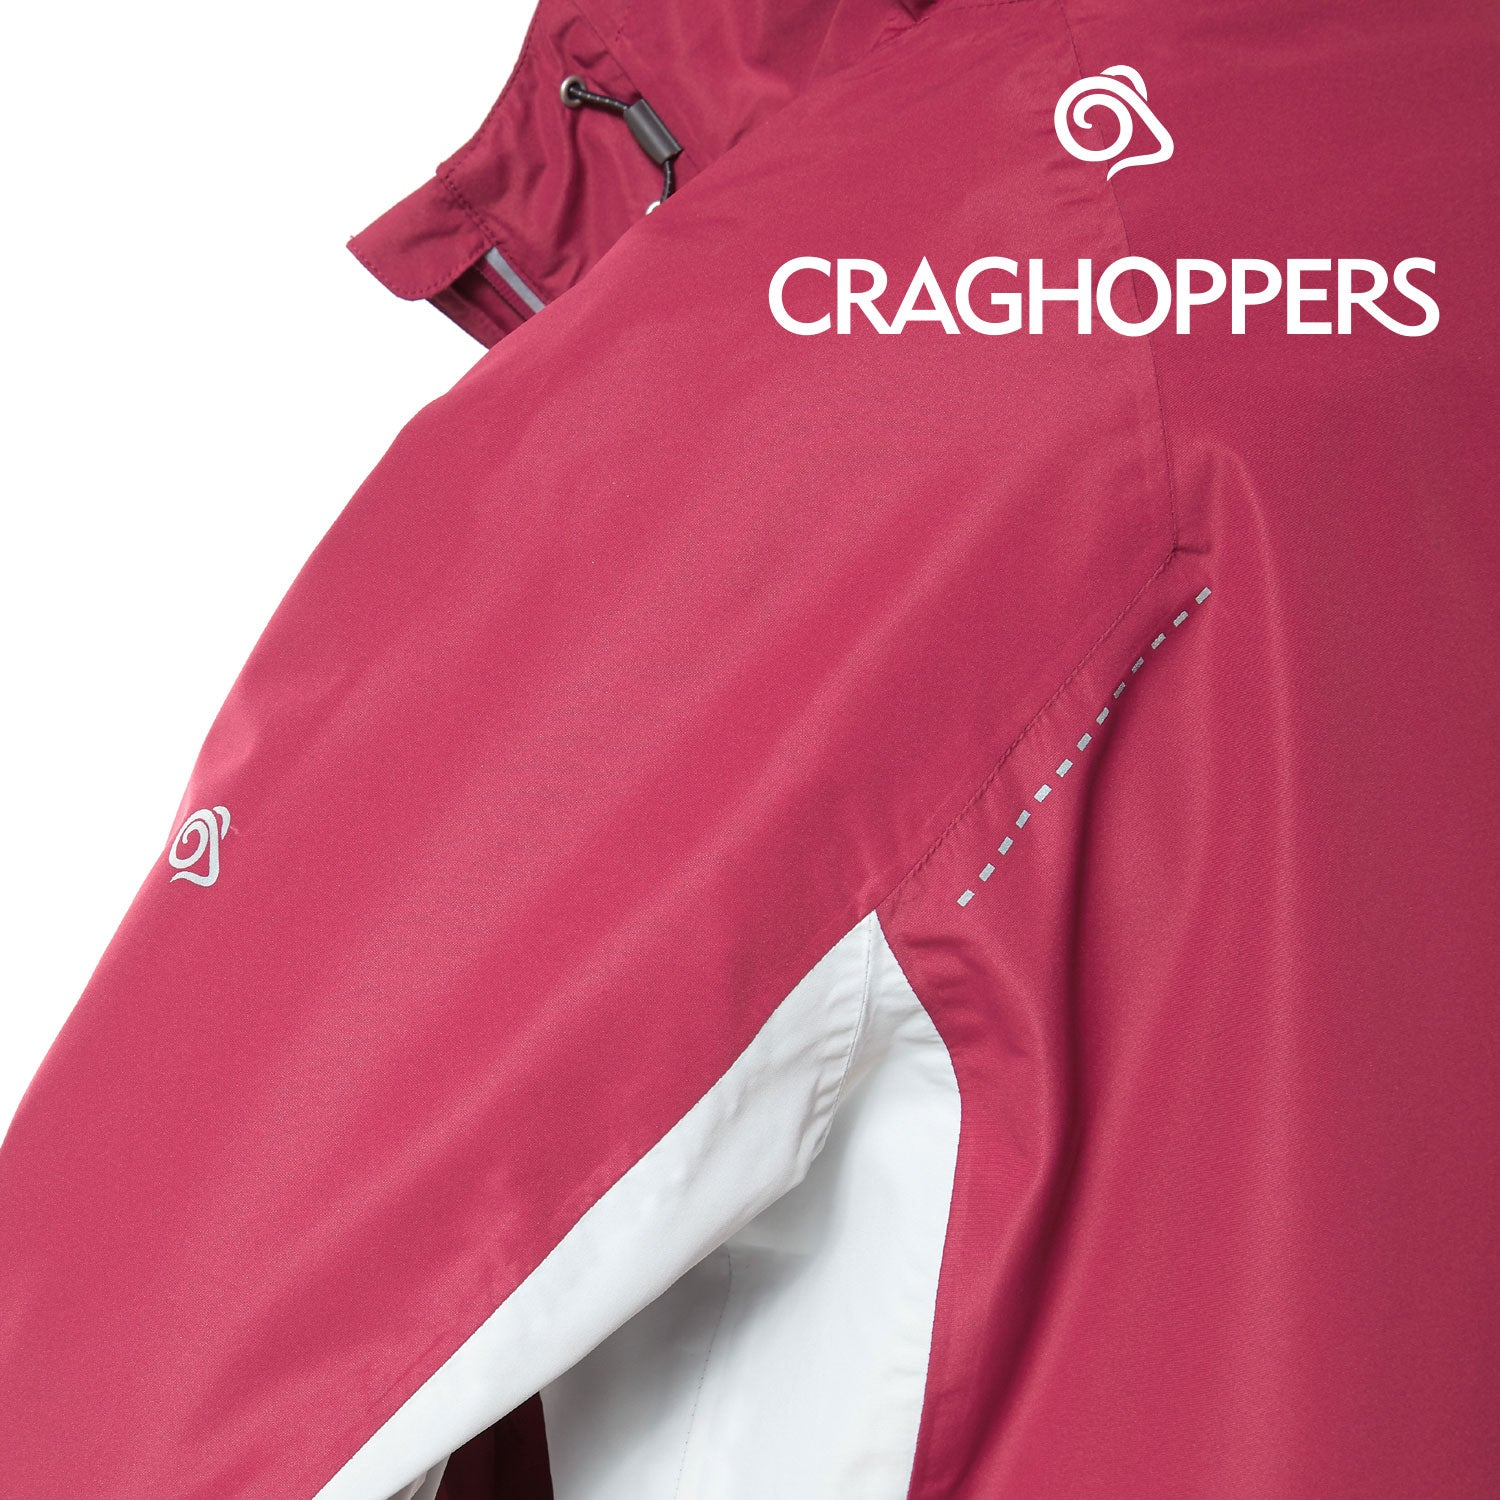 Arm insert view Craghoppers Horizon Waterproof Jacket | Amalfi Rose